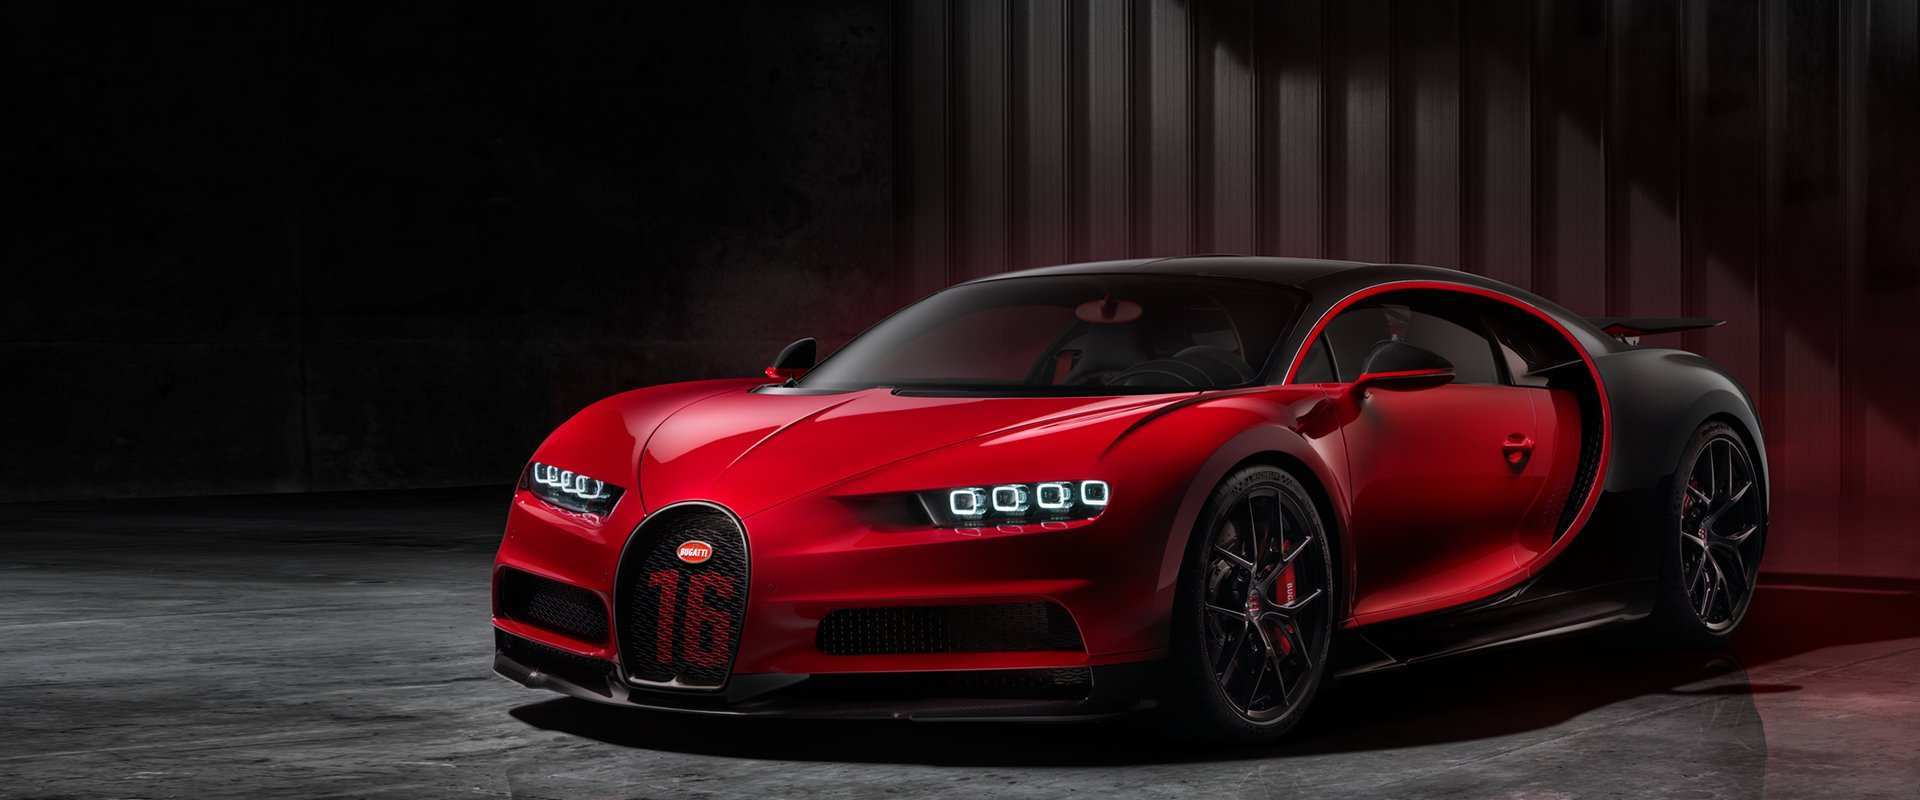 18 Concept of 2019 Bugatti Chiron Performance and New Engine with 2019 Bugatti Chiron